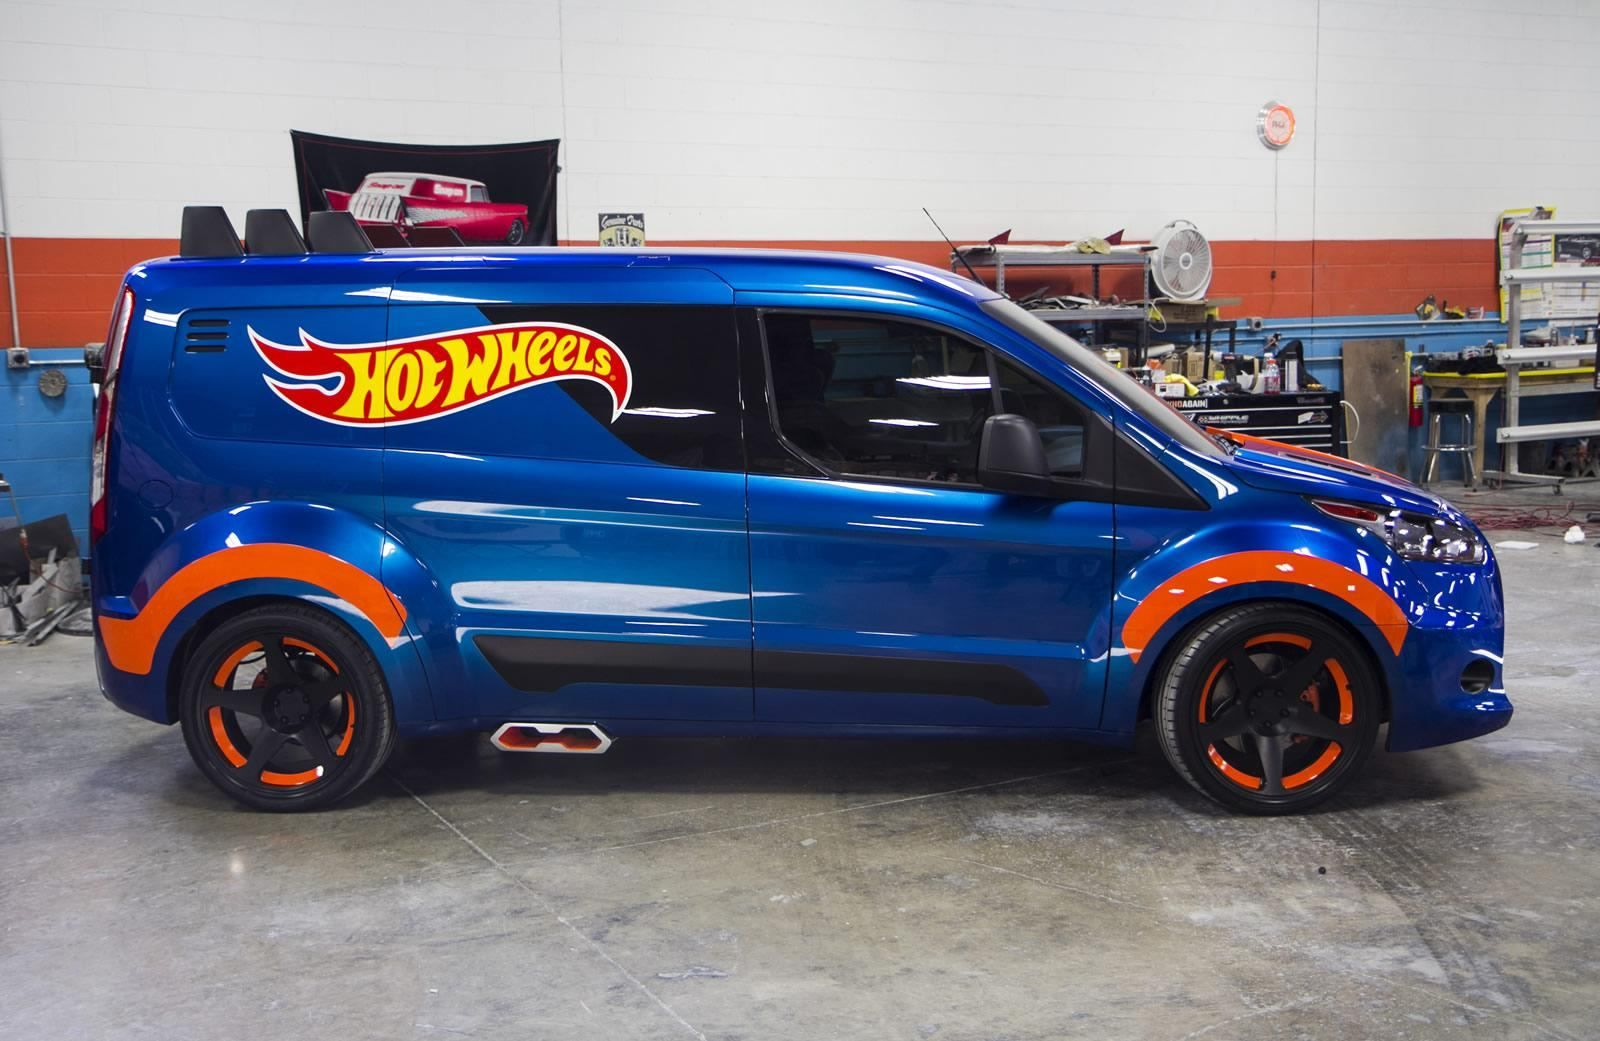 Ford Van Full Size With Images Ford Transit Hot Wheels Mini Van